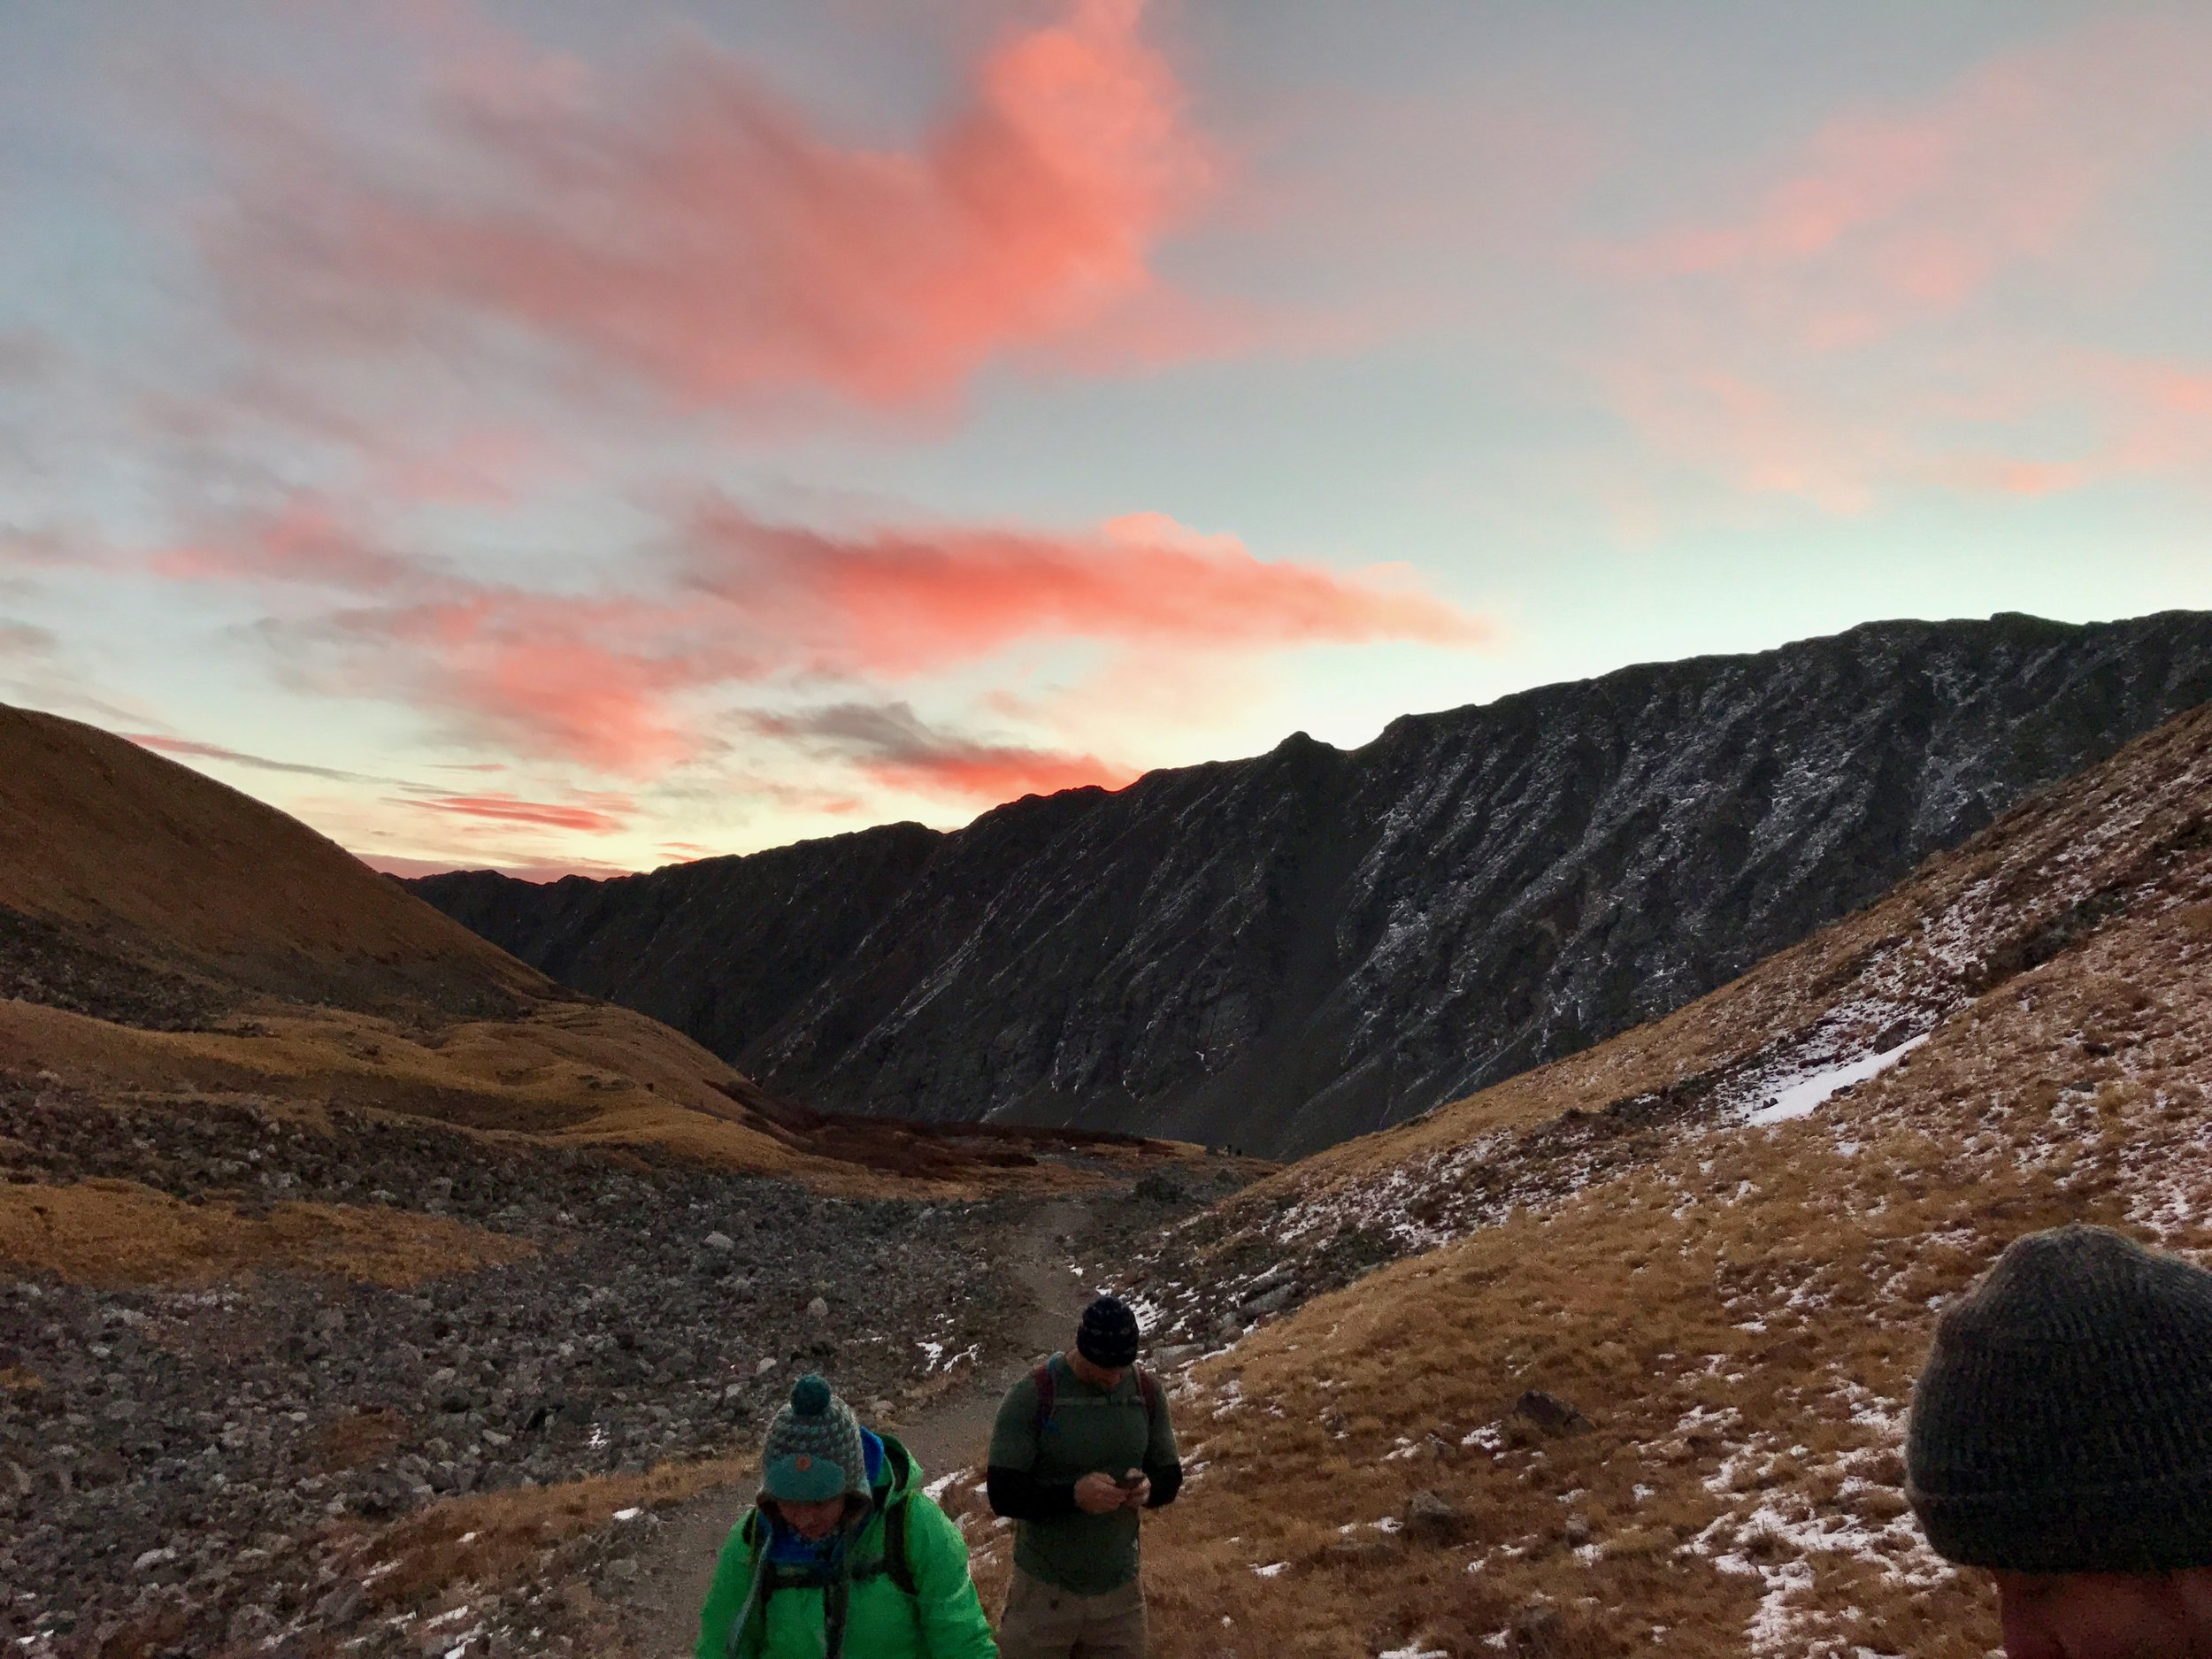 I would highly recommend starting this hike before sunrise. Something about mountains and colored clouds can't be beat.